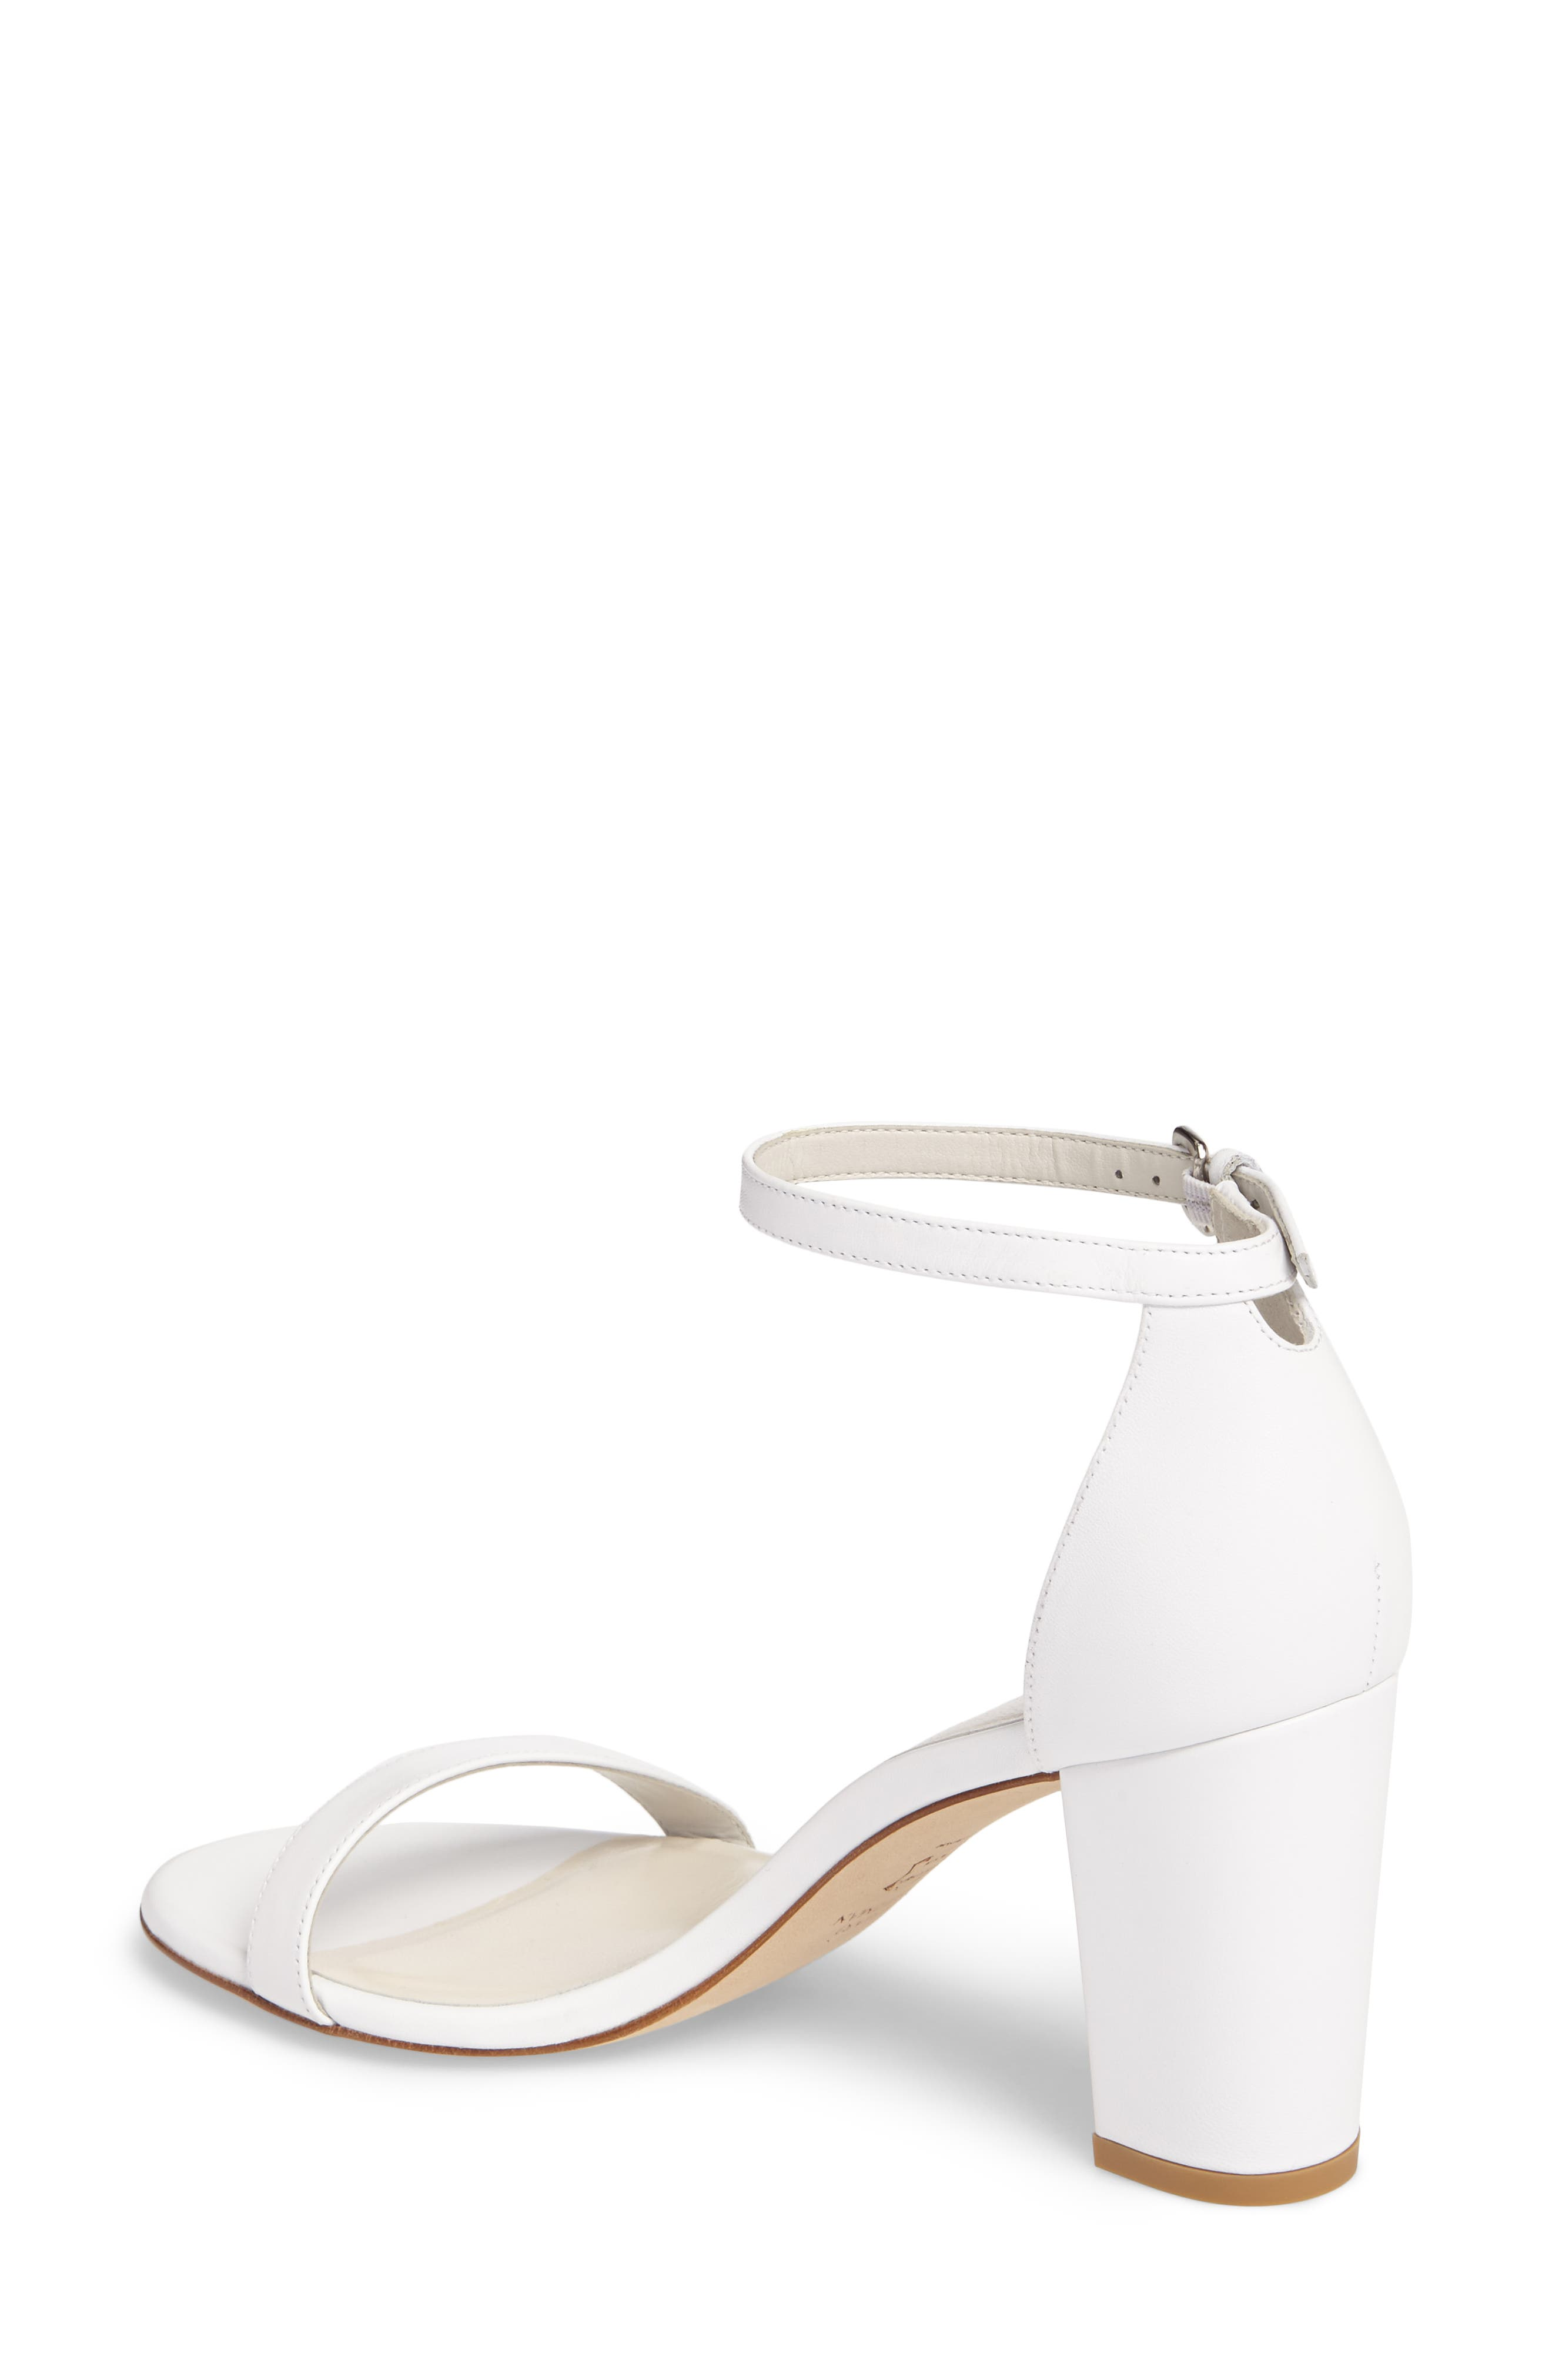 NearlyNude Ankle Strap Sandal,                             Alternate thumbnail 29, color,